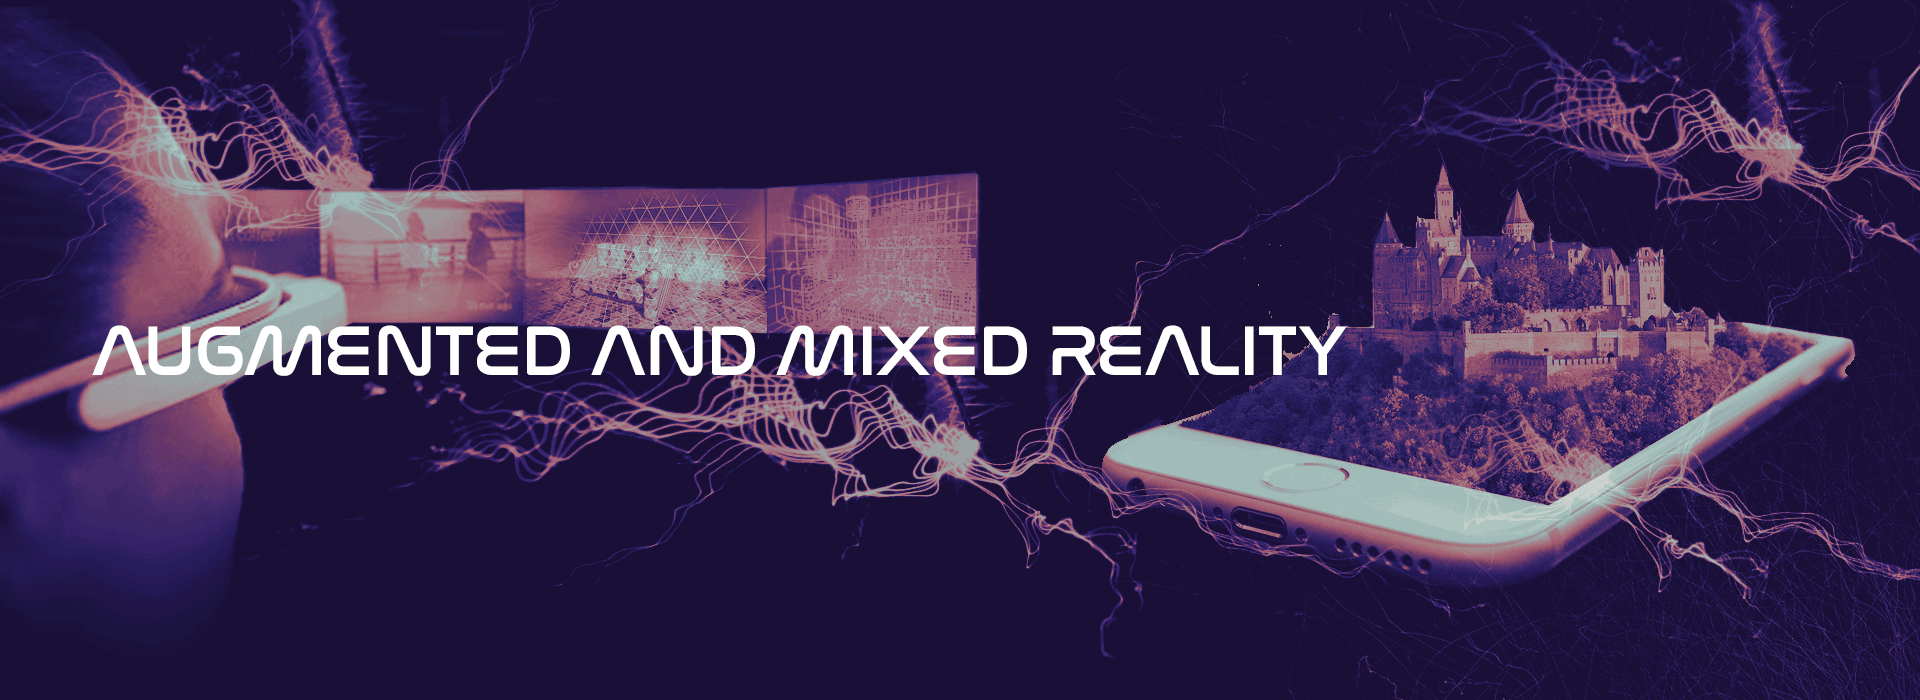 Augmented and Mixed Reality - Computer vision engineering company It-Jim